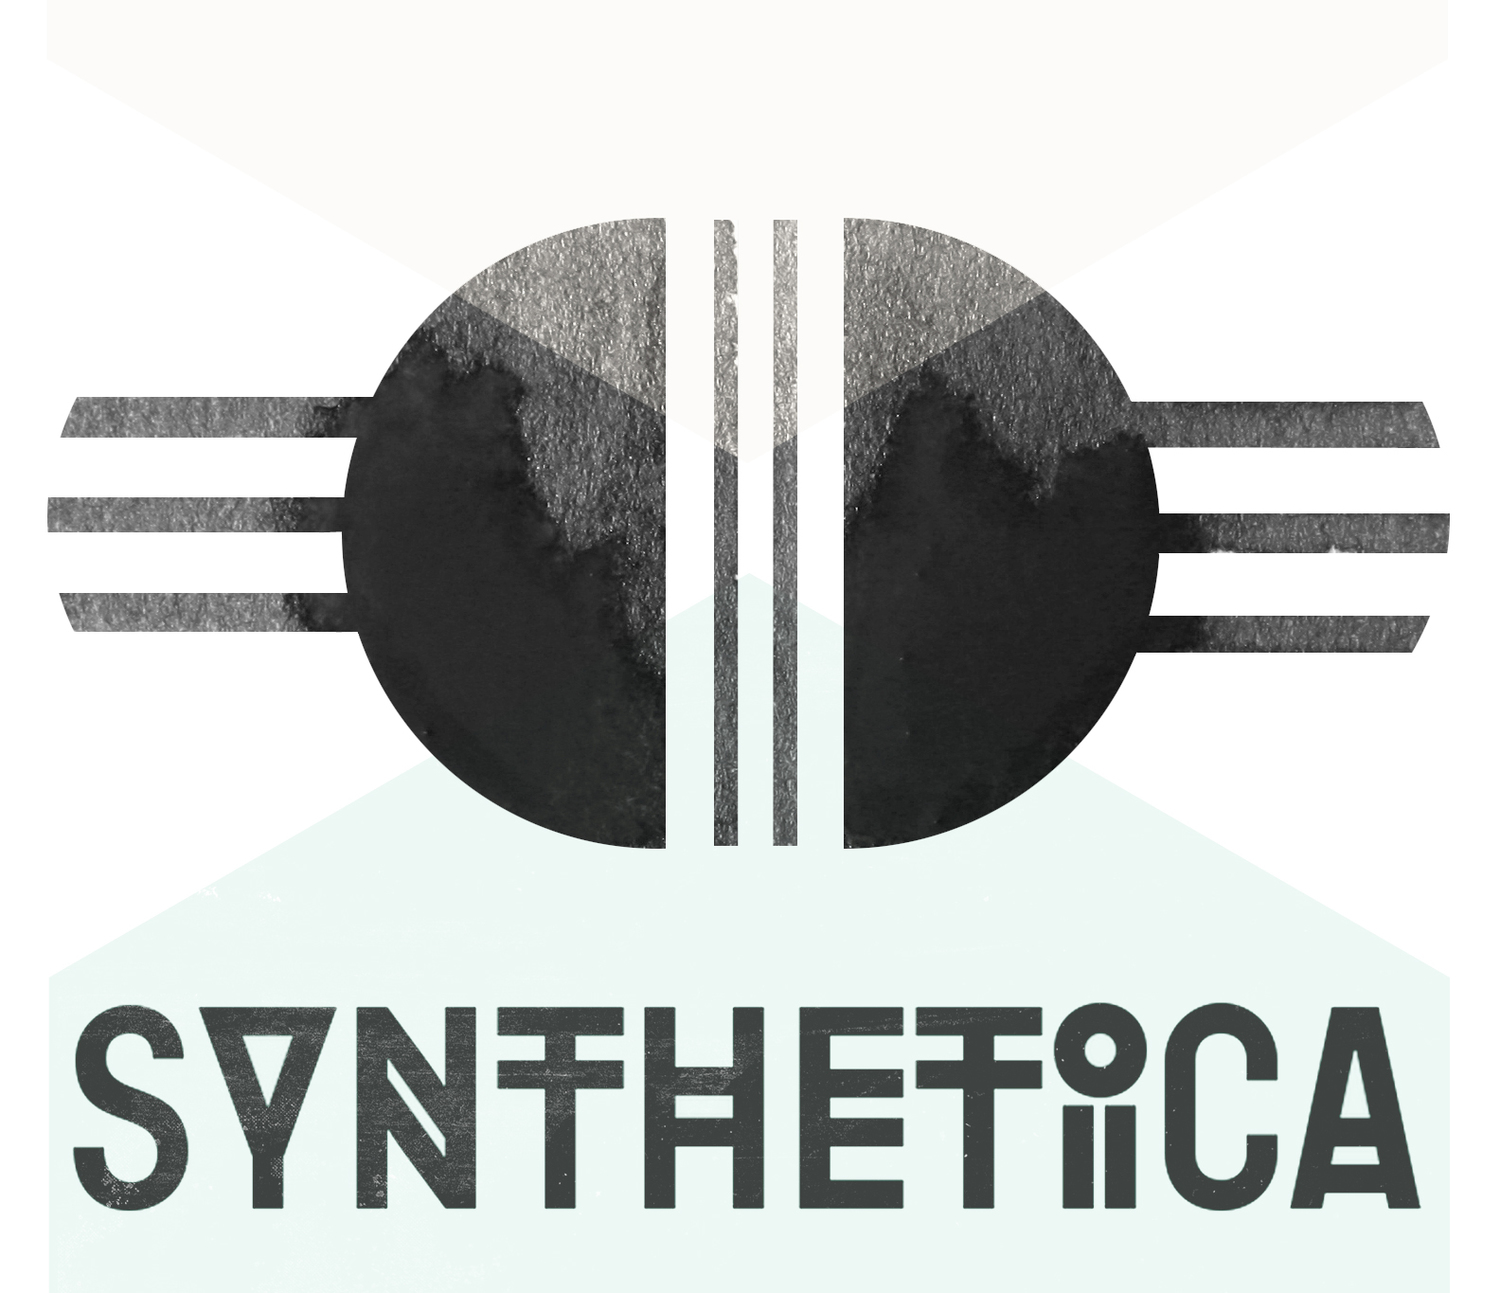 synthetica